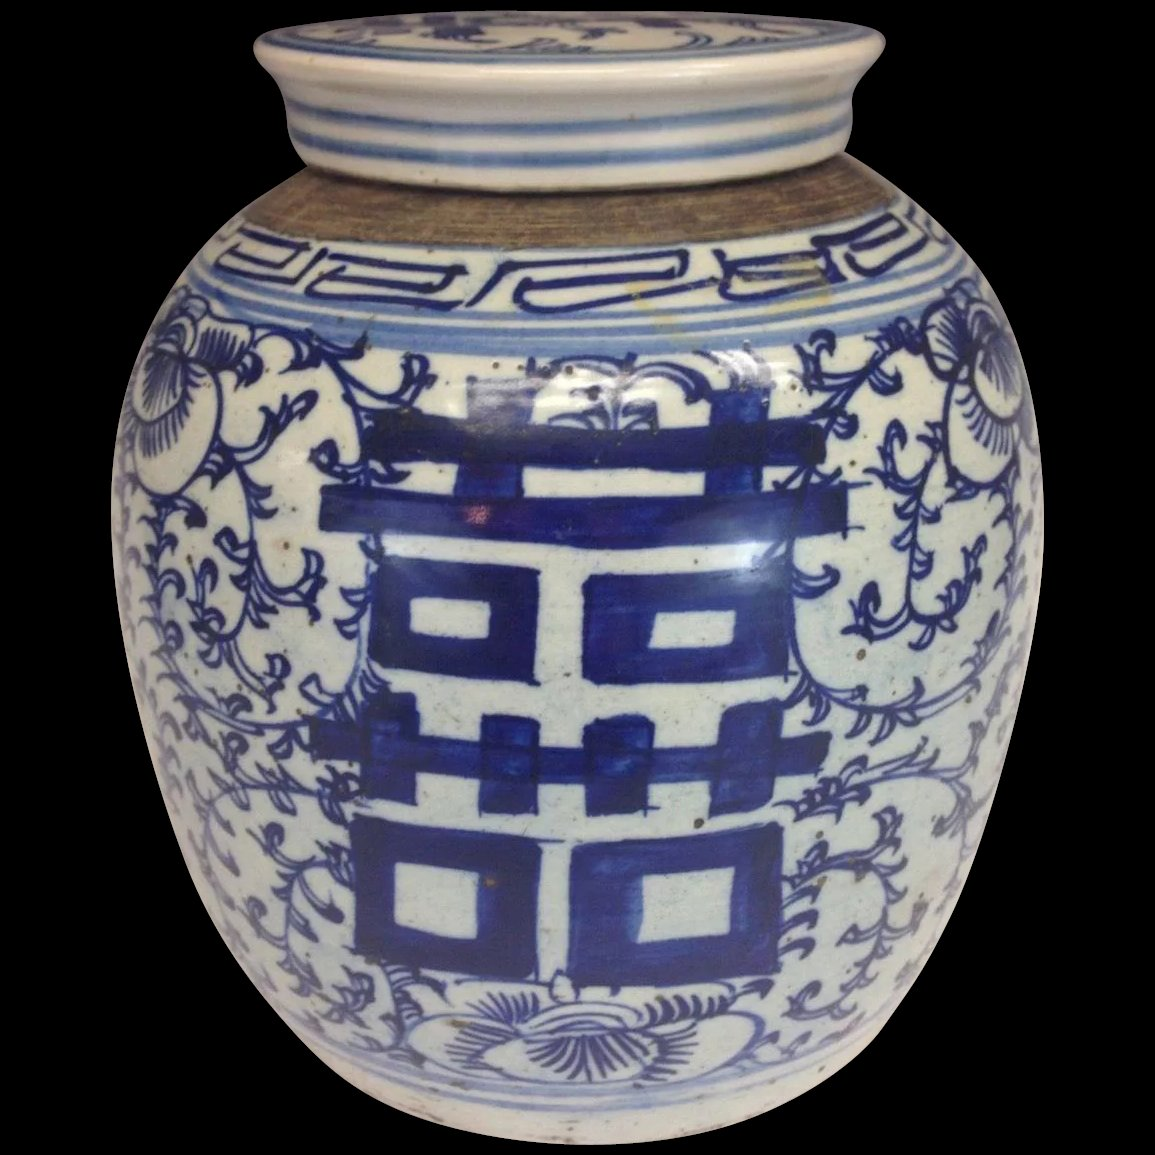 Stunning beautiful chinese antique happiness porcelain blue white stunning beautiful chinese antique happiness porcelain blue white vase ginger jar click to expand reviewsmspy